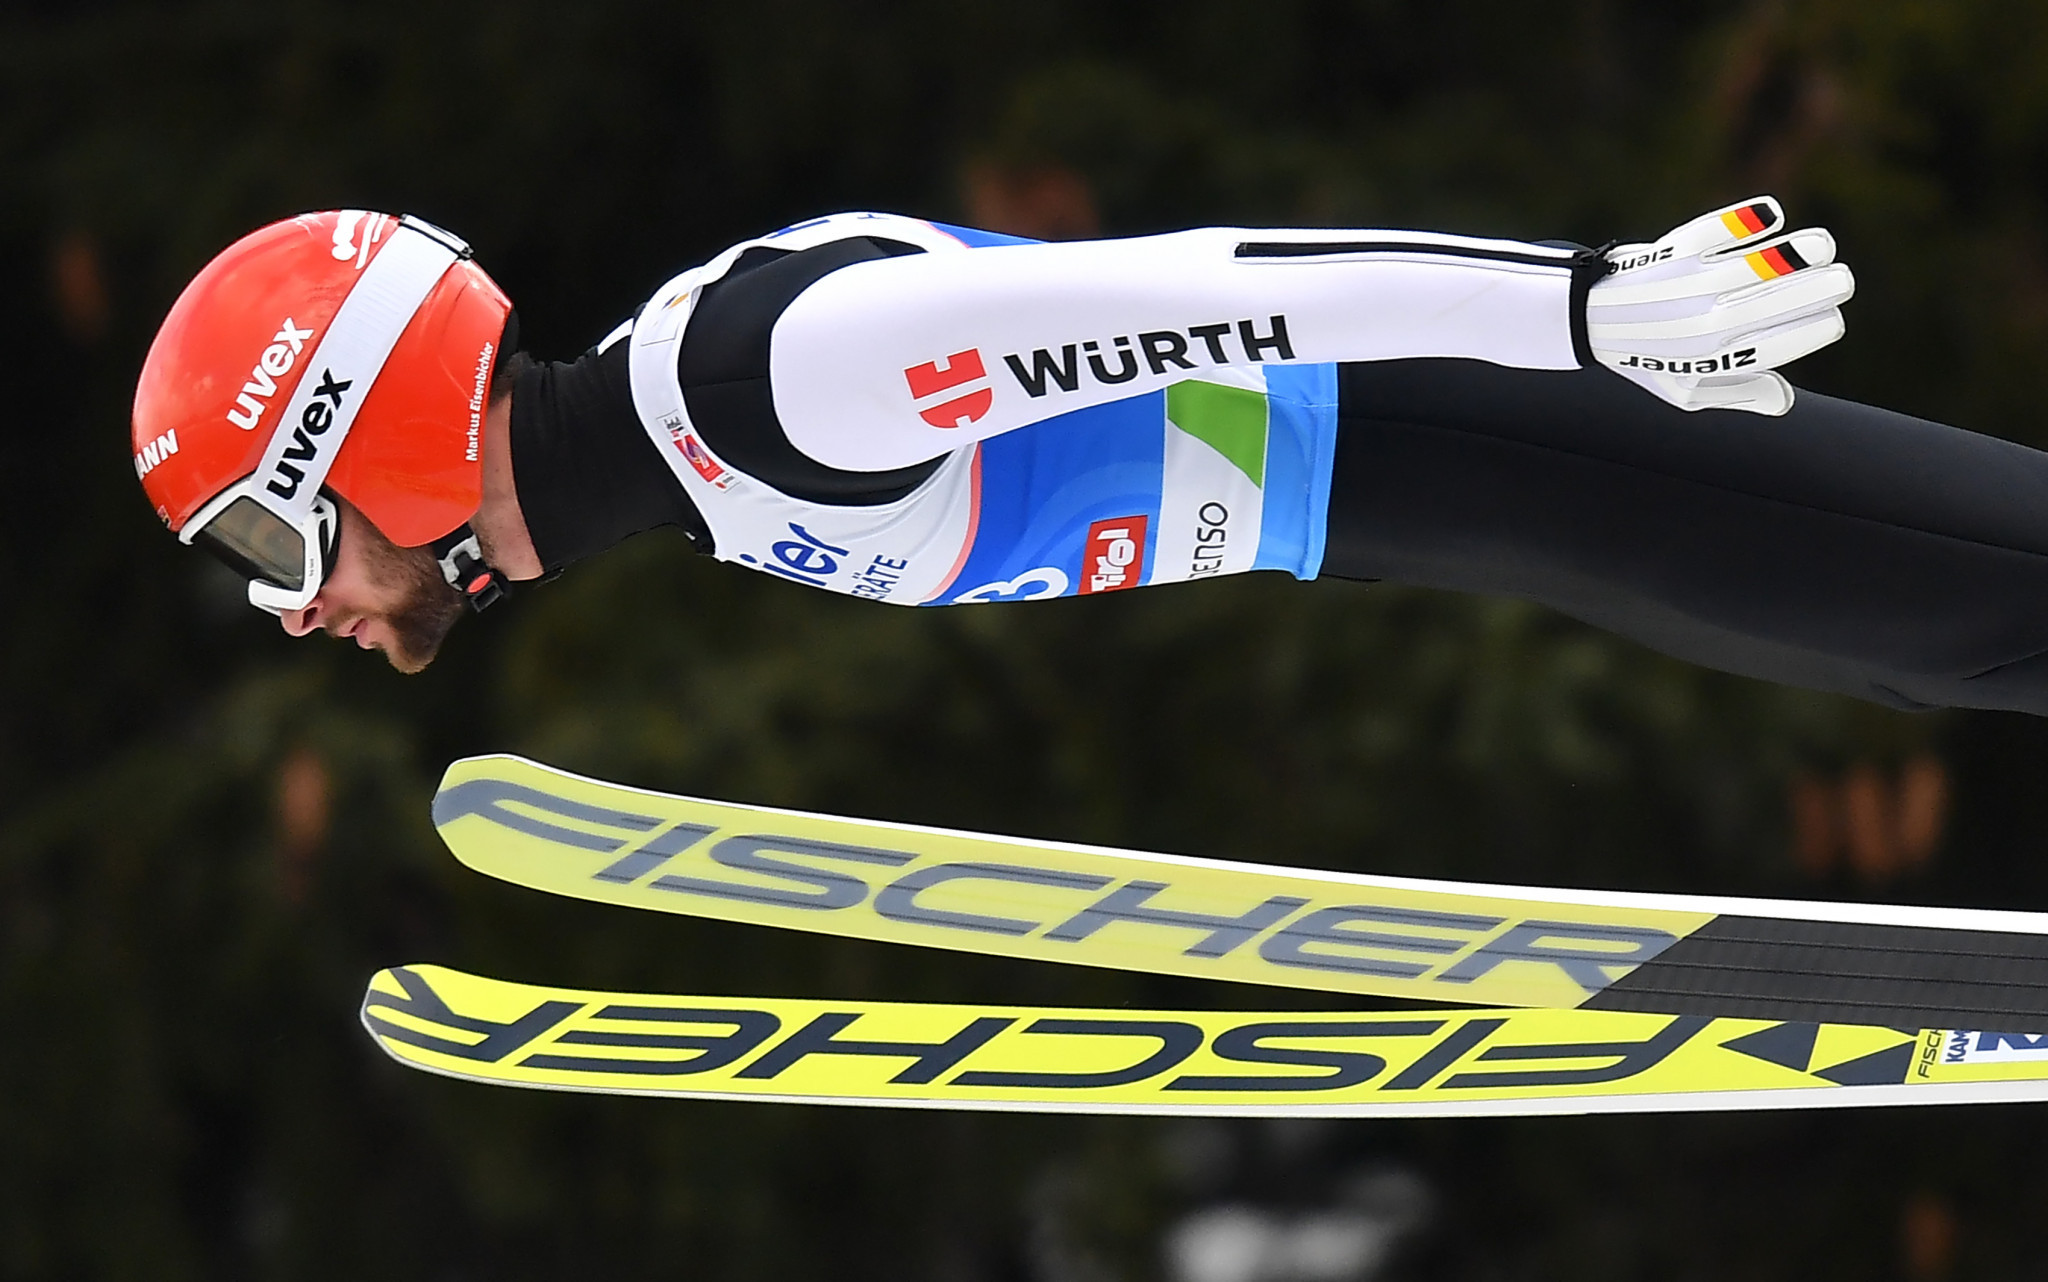 Markus Eisenbichler of Germany topped the ski jumping qualification event ©Getty Images